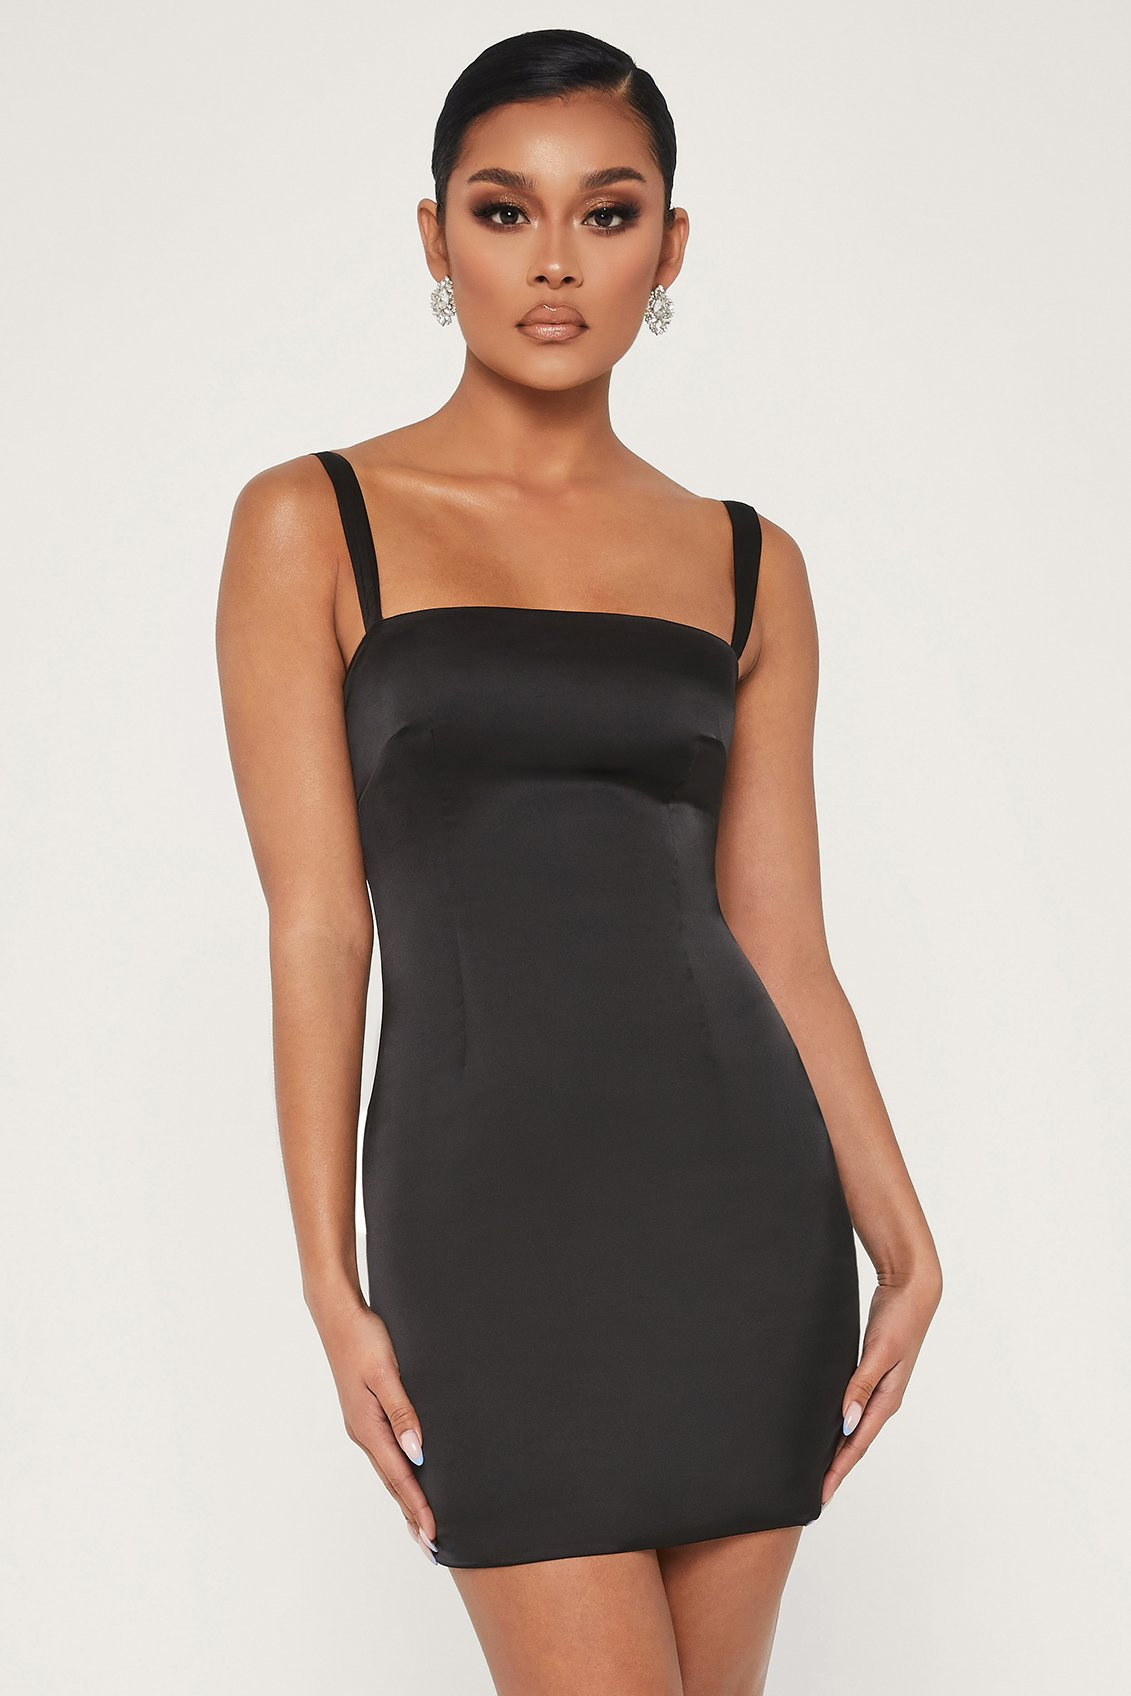 Mazie Satin Bodycon Dress - Black - MESHKI